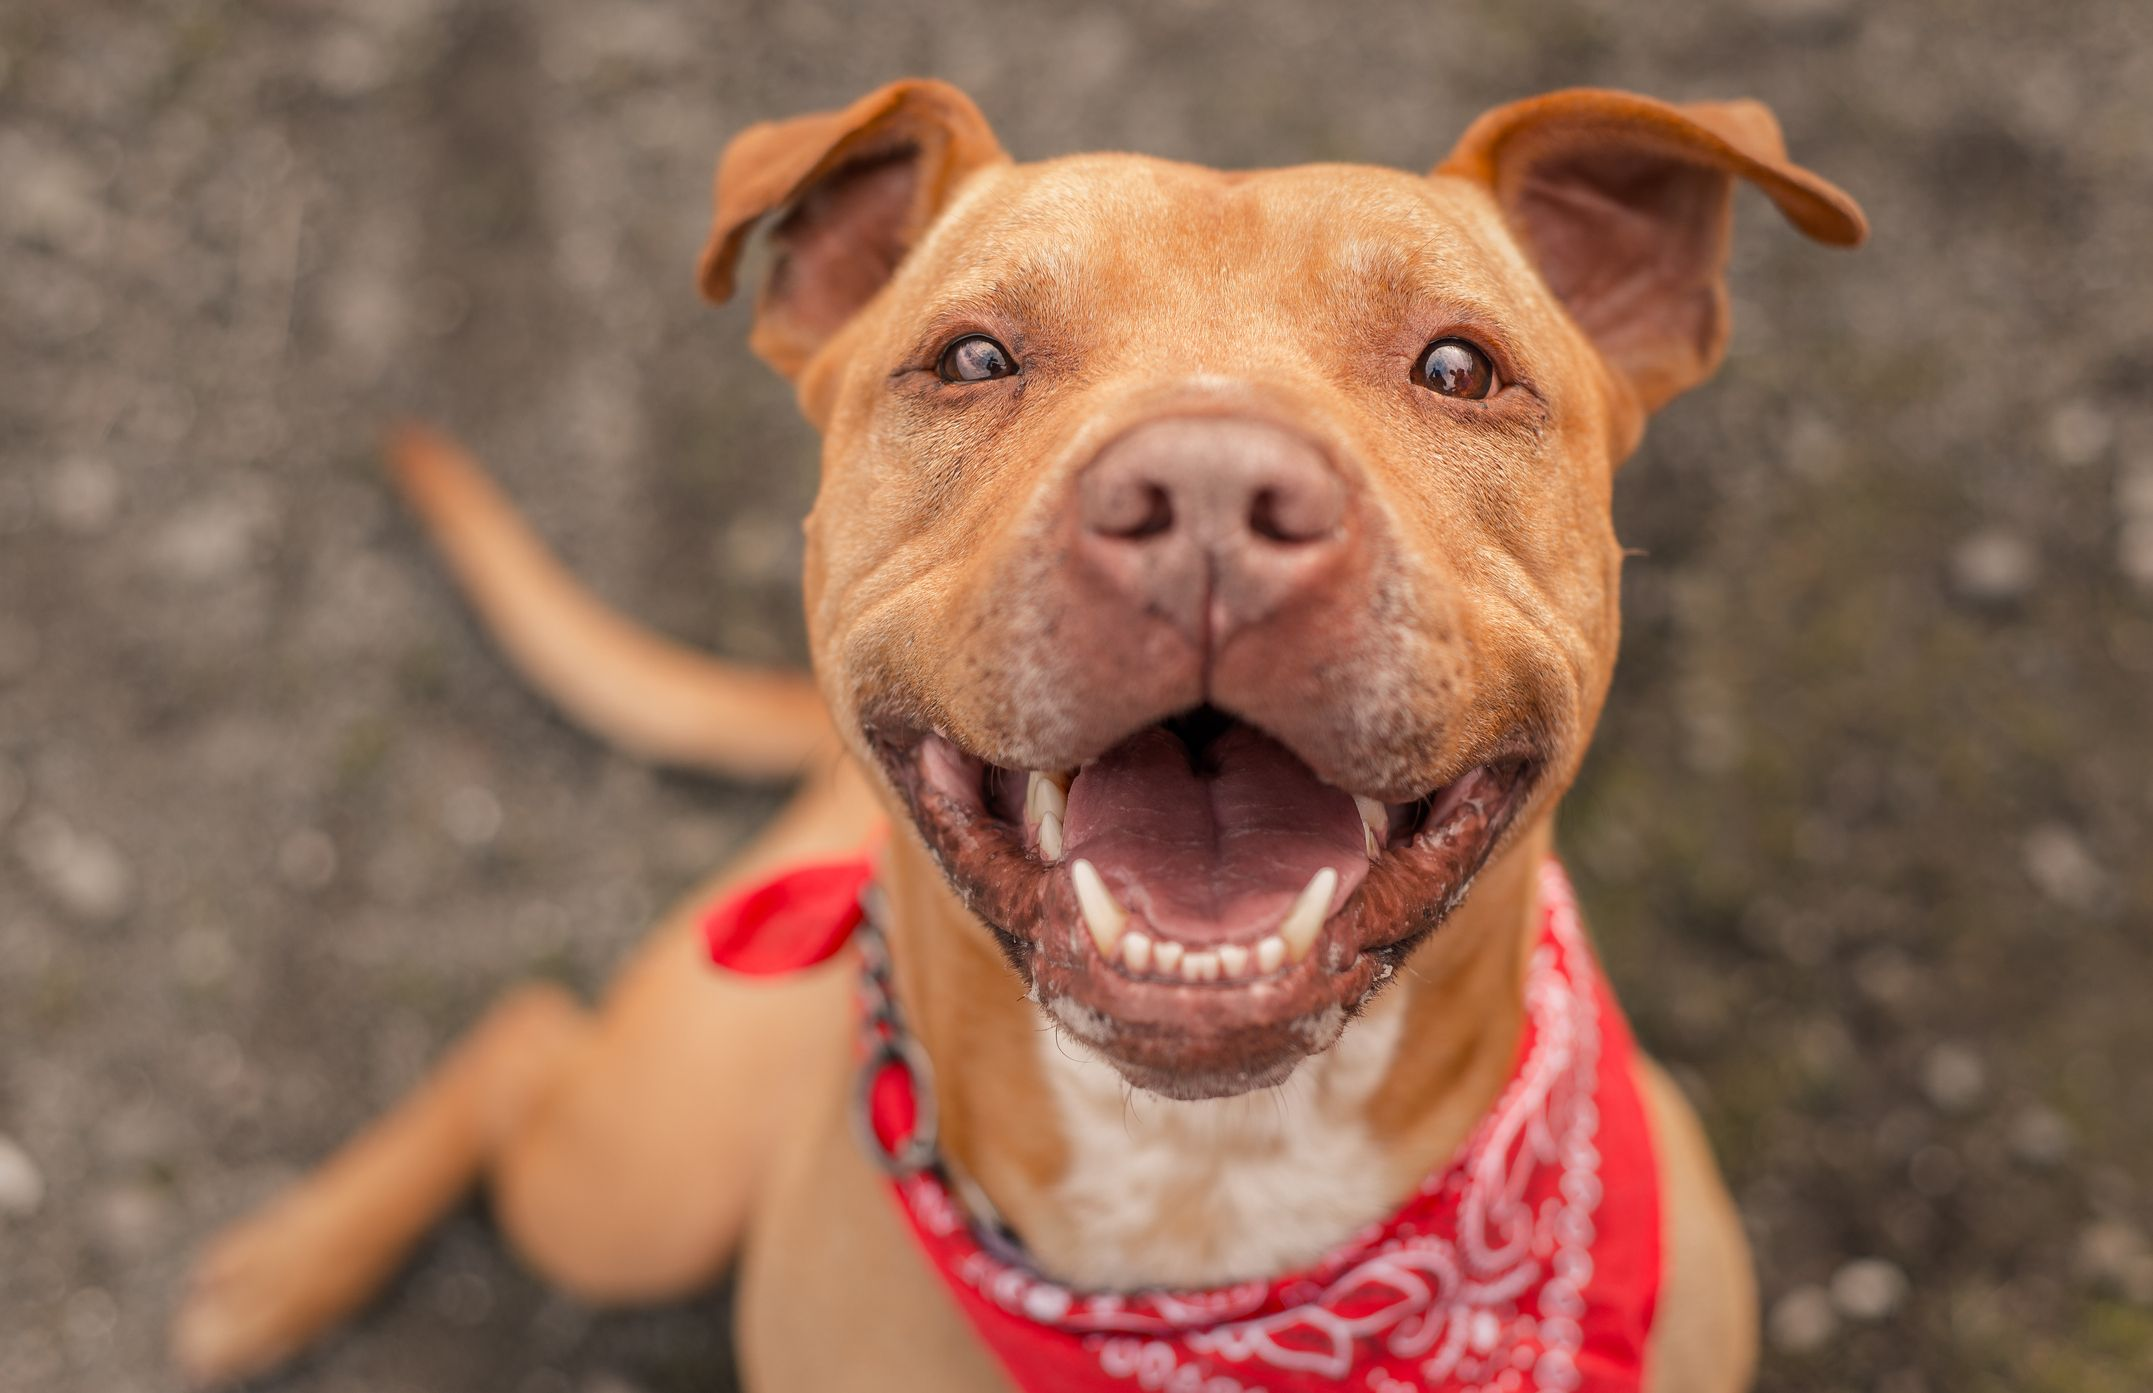 Do Dogs Smile? Here's What's Really Behind That Goofy Grin